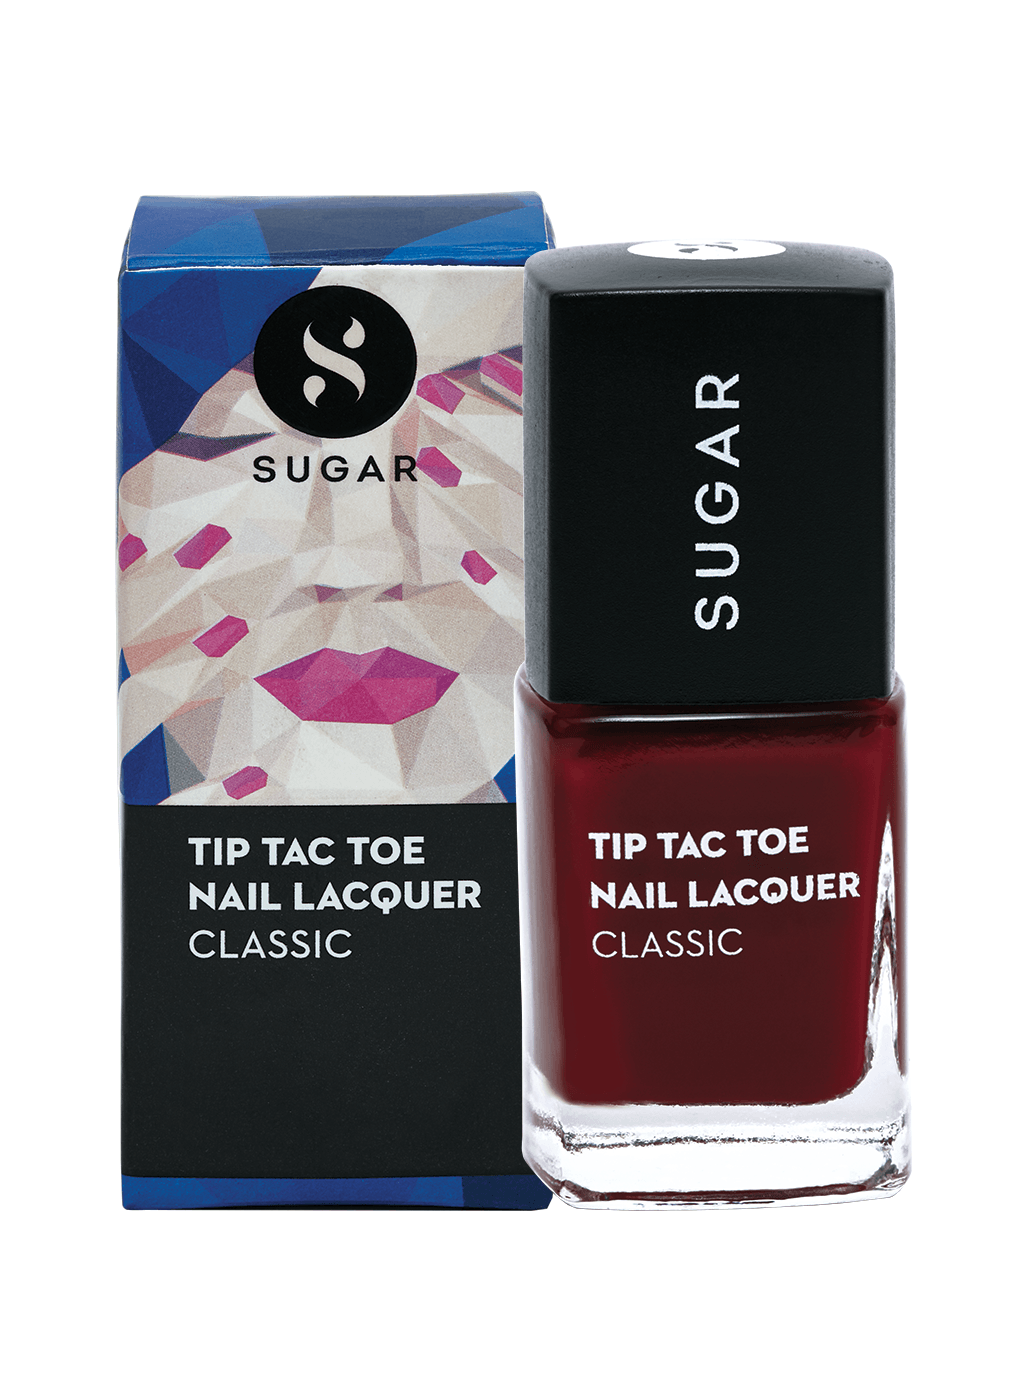 Tip Tac Toe Nail Lacquer - 059 Merlot The Merrier (Wine Red)